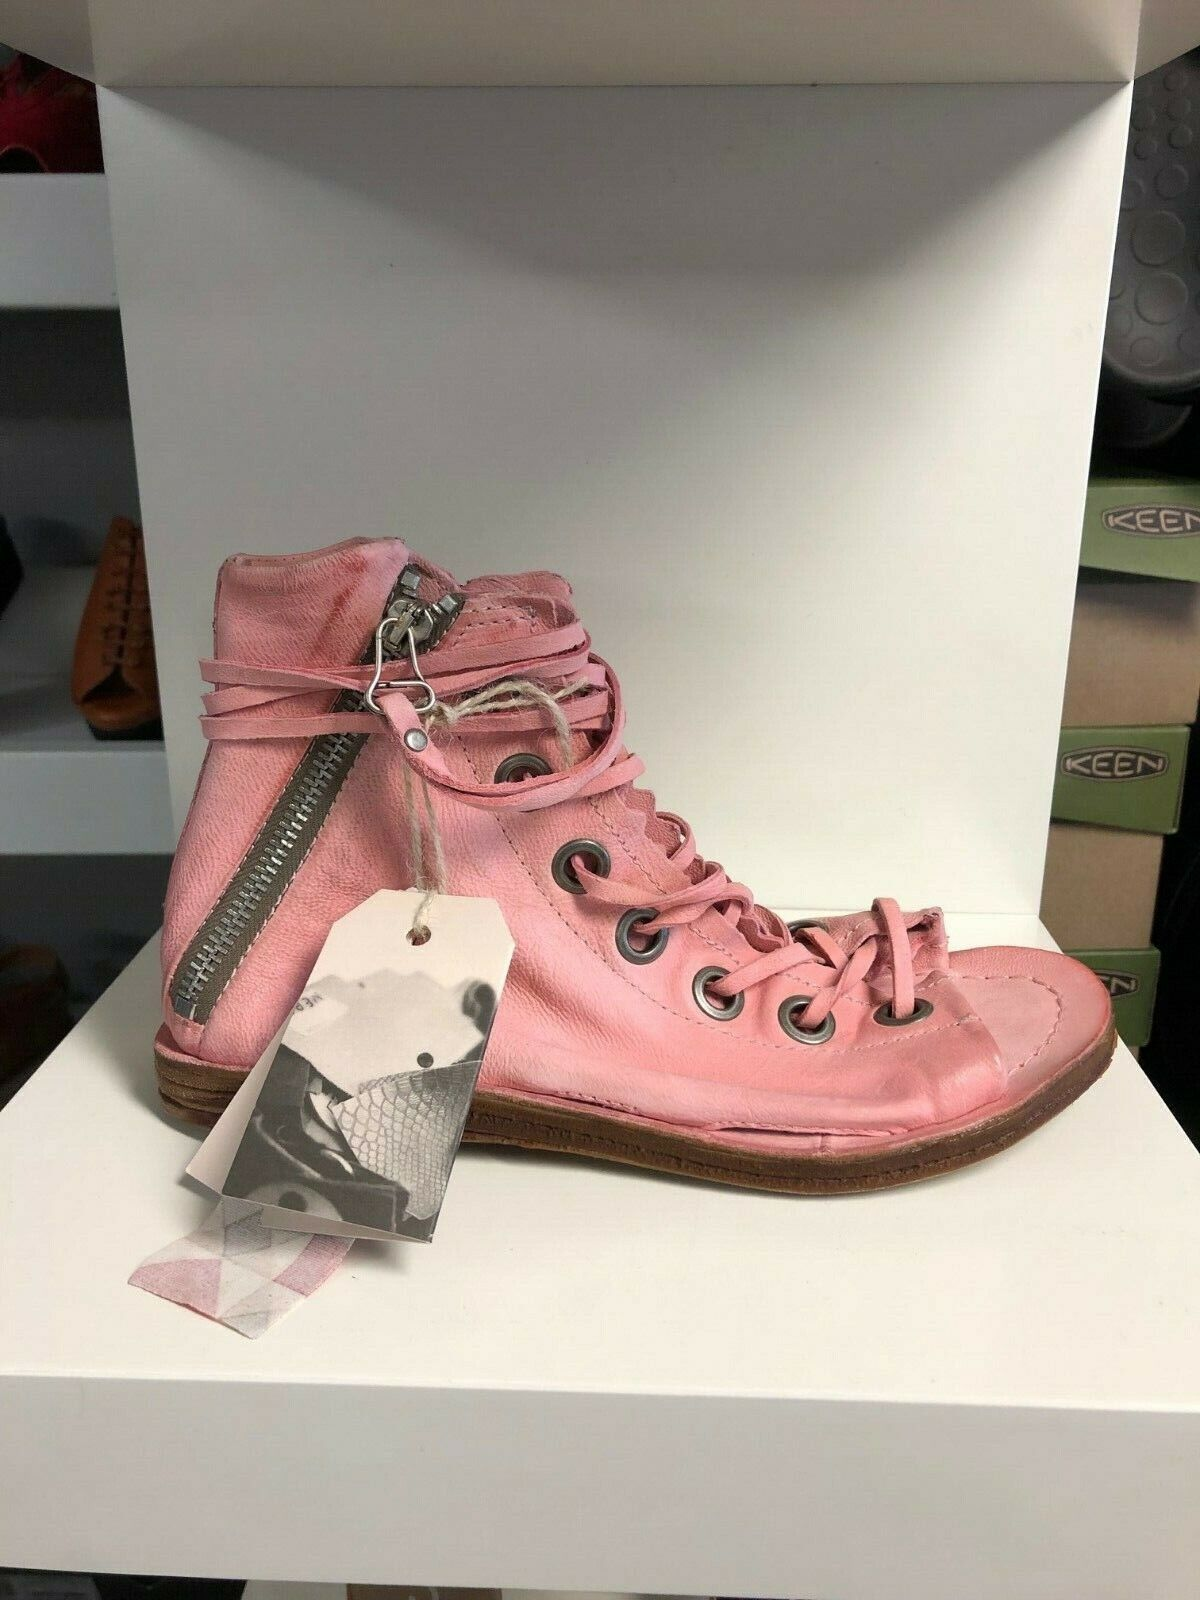 A.s.98 Regal Gladiator Dolly Pink Sandal Women's sizes 36-41 NEW